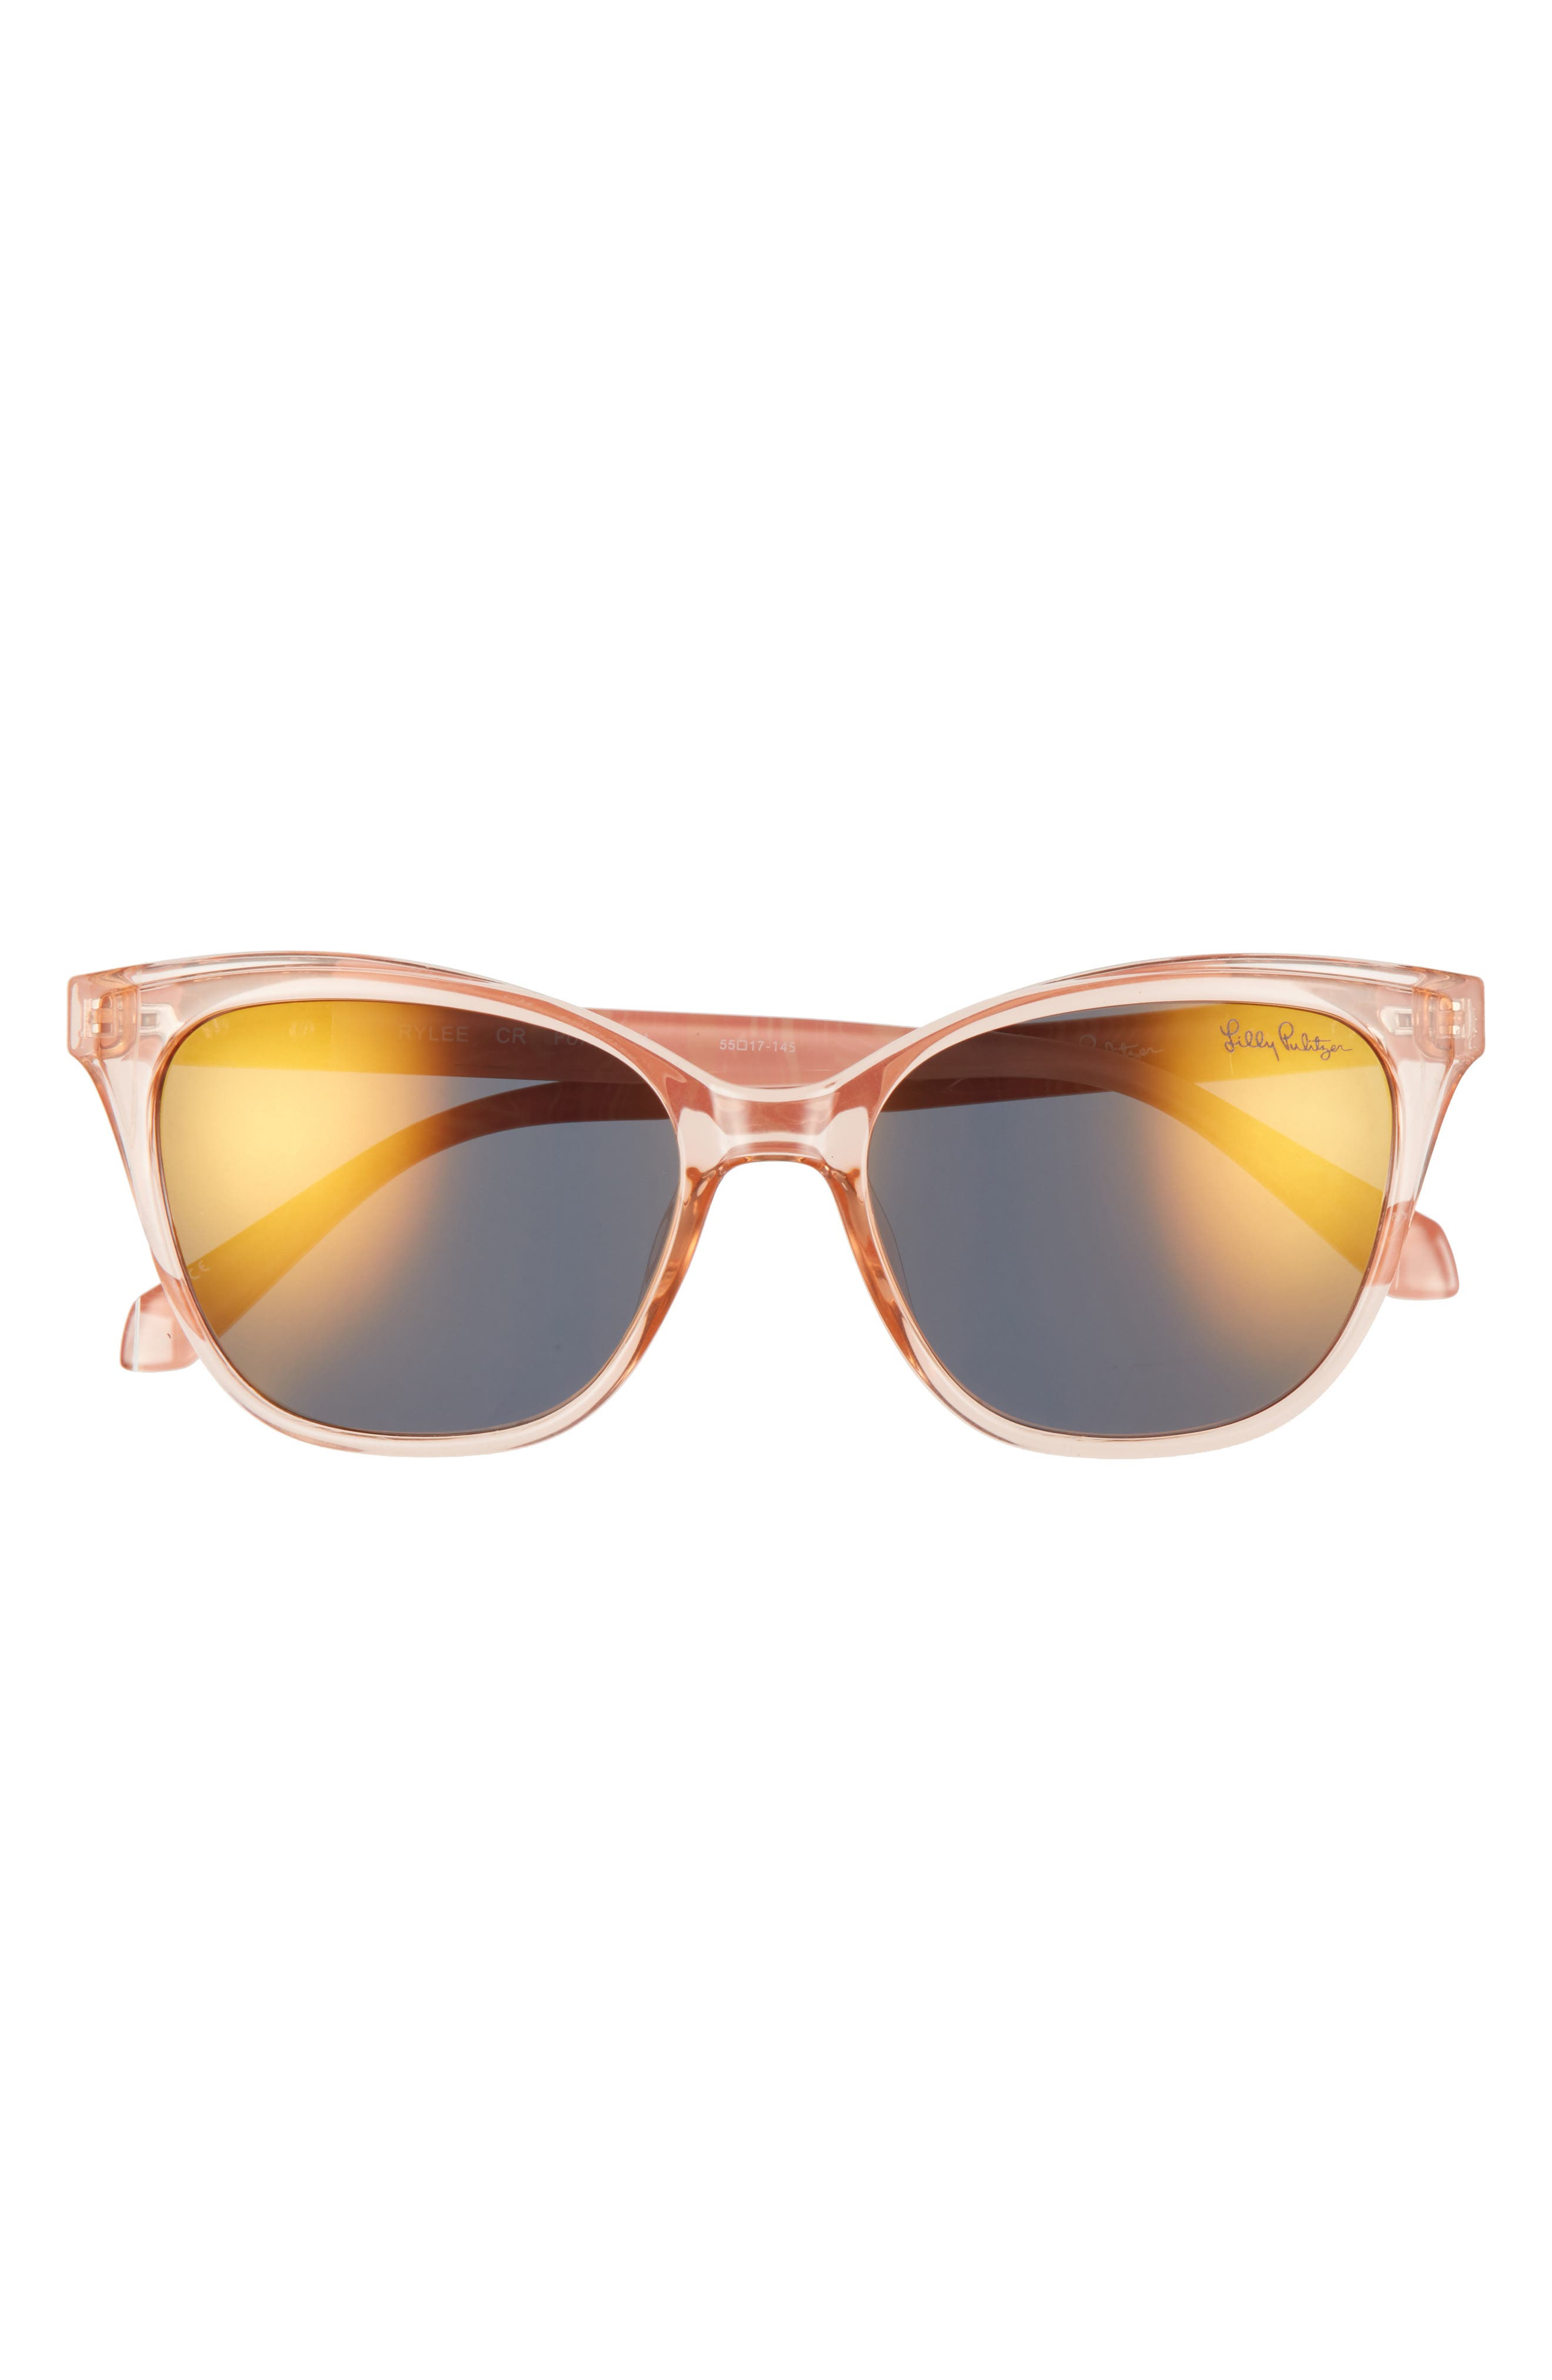 Bold cat-eye frames intensify the retro appeal of standout sunglasses fitted with glare-reducing polarized lenses. Style Name: Lilly Pulitzer Rylee 55mm Polarized Cat Eye Sunglasses. Style Number: 6104399. Available in stores.